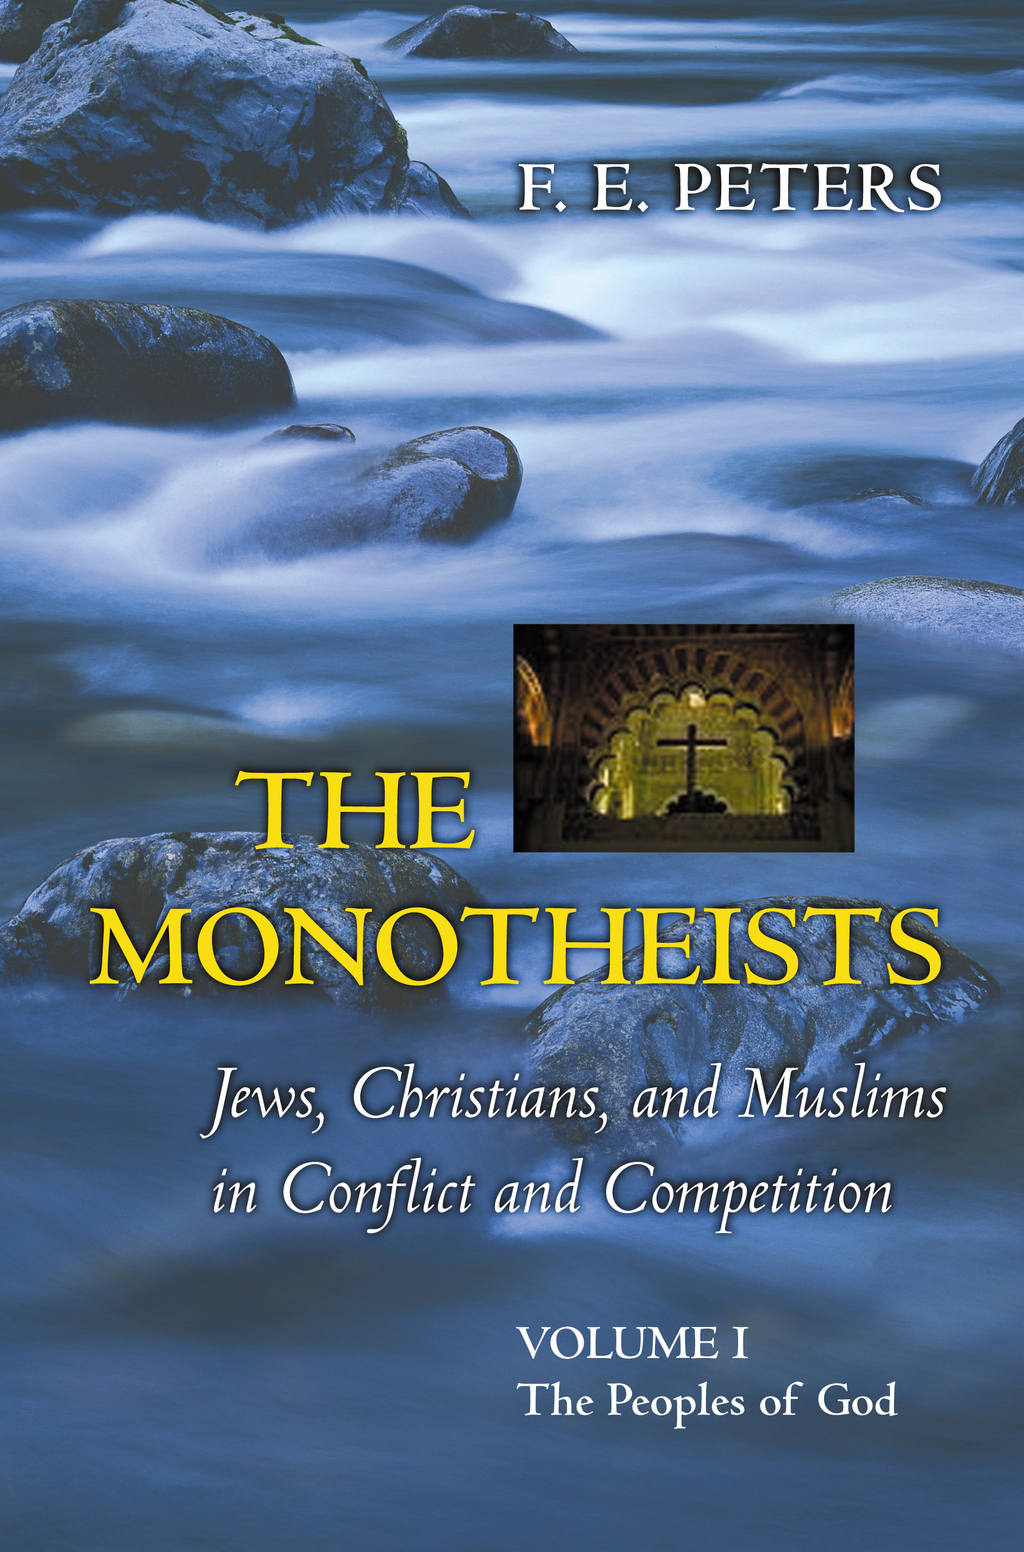 The Monotheists: Jews, Christians, and Muslims in Conflict and Competition, Volume I By: F. E. Peters